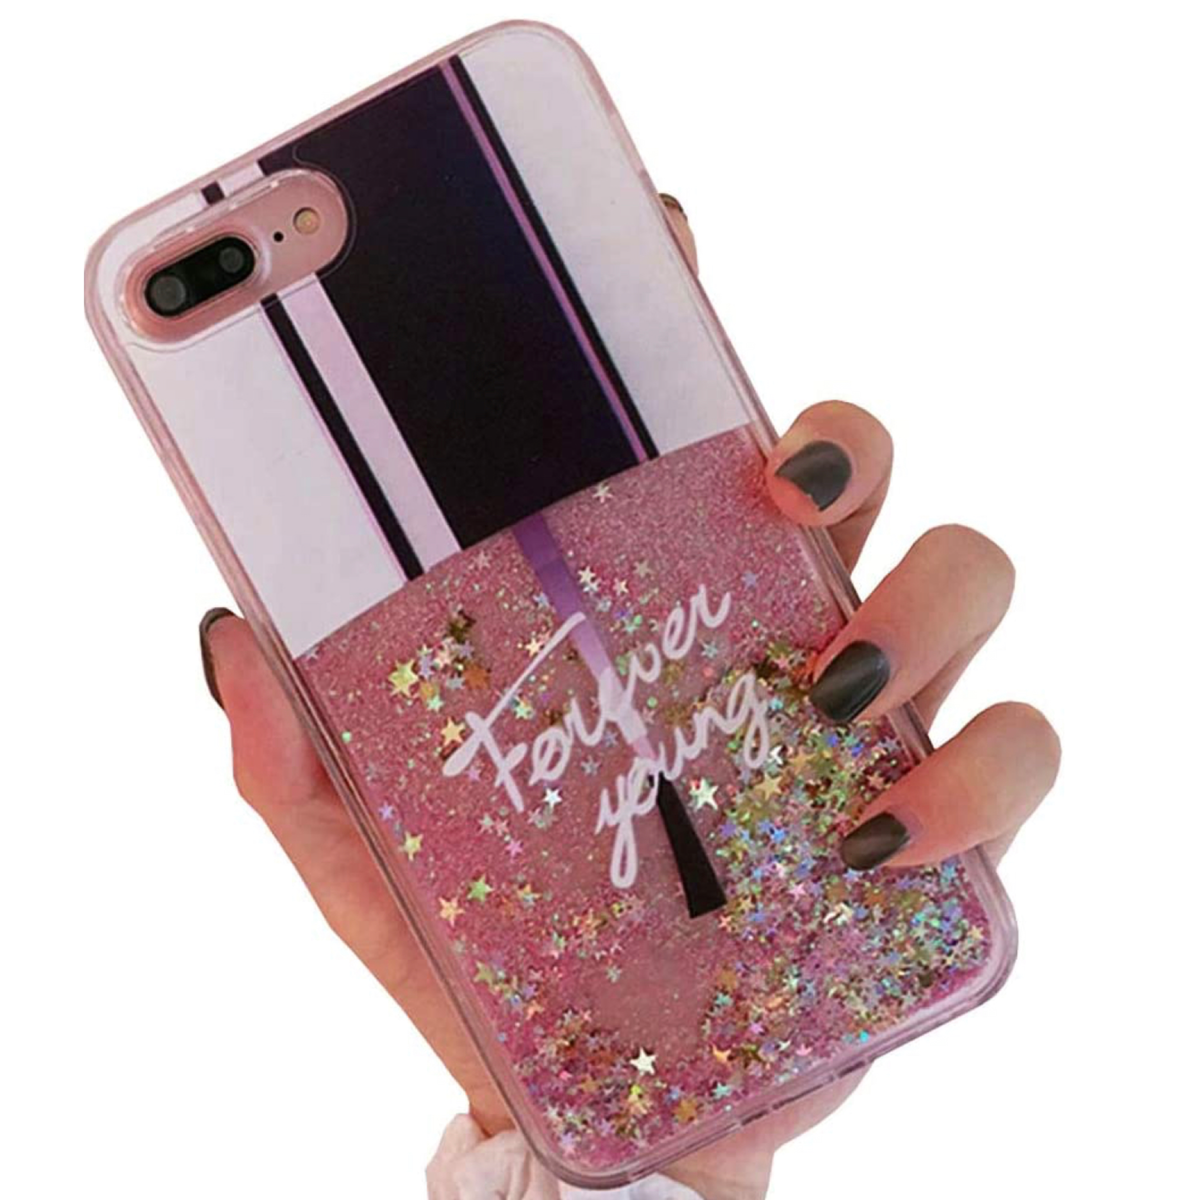 iPhone 11 Cellphone Phone Case Makeup Theme Pro Max Liquid Nail Polish